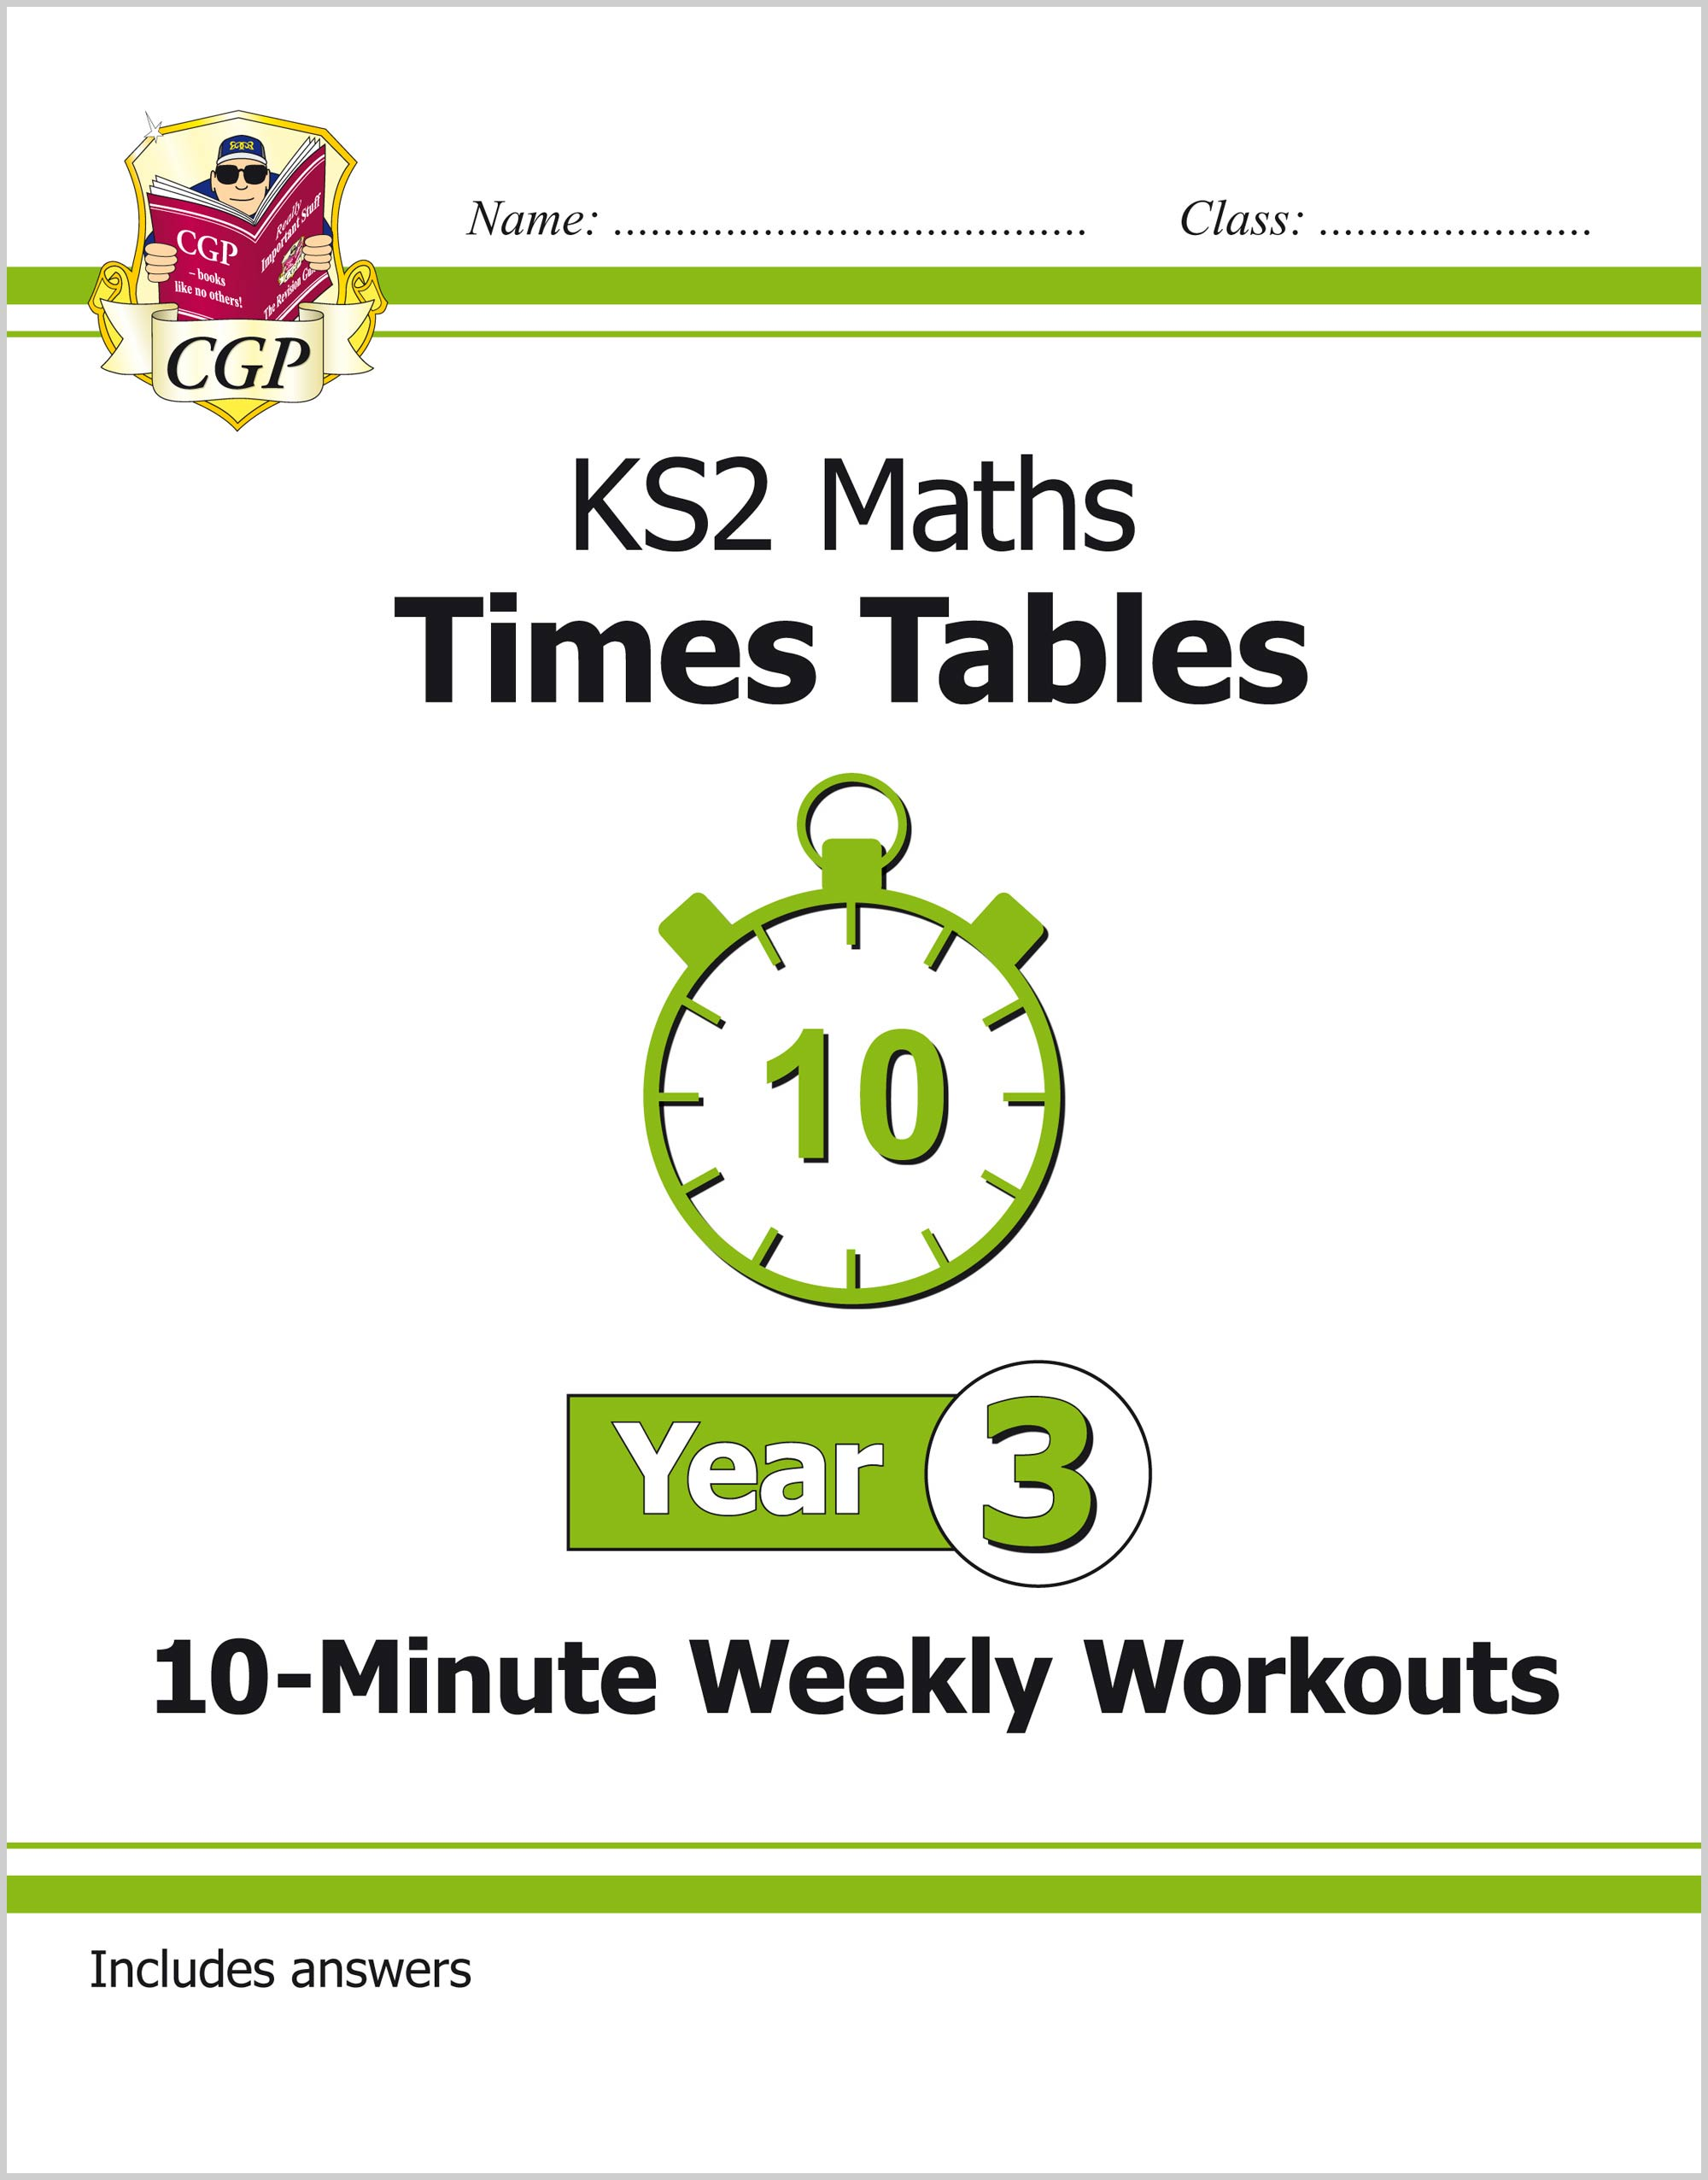 M3TXW21 - New KS2 Maths: Times Tables 10-Minute Weekly Workouts - Year 3